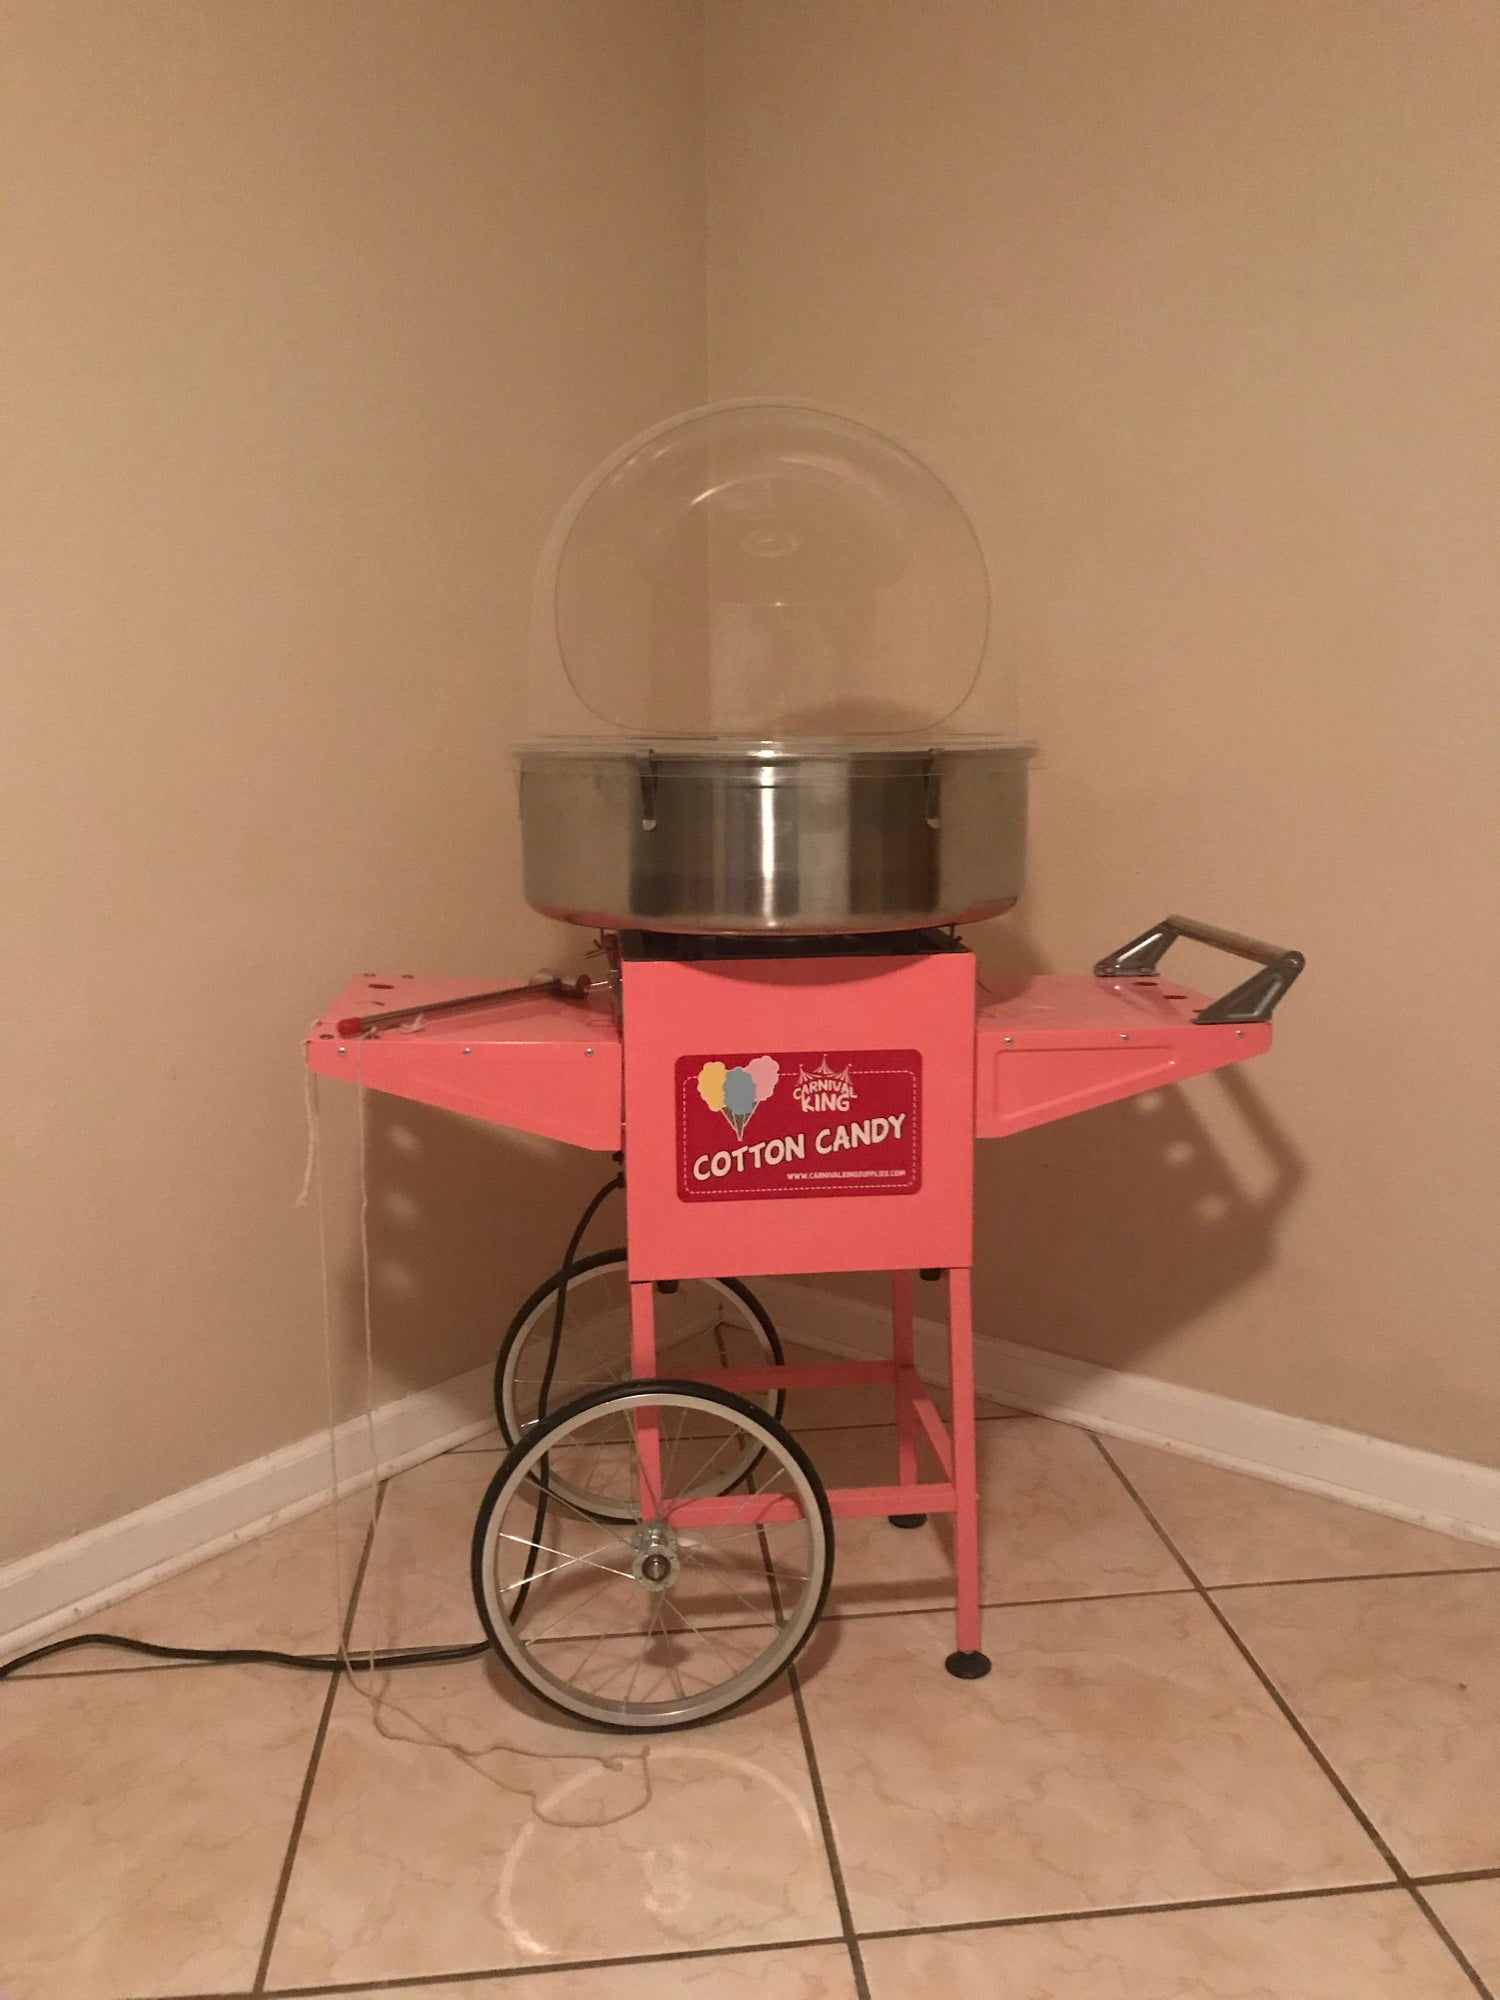 Cotton candy machine #2